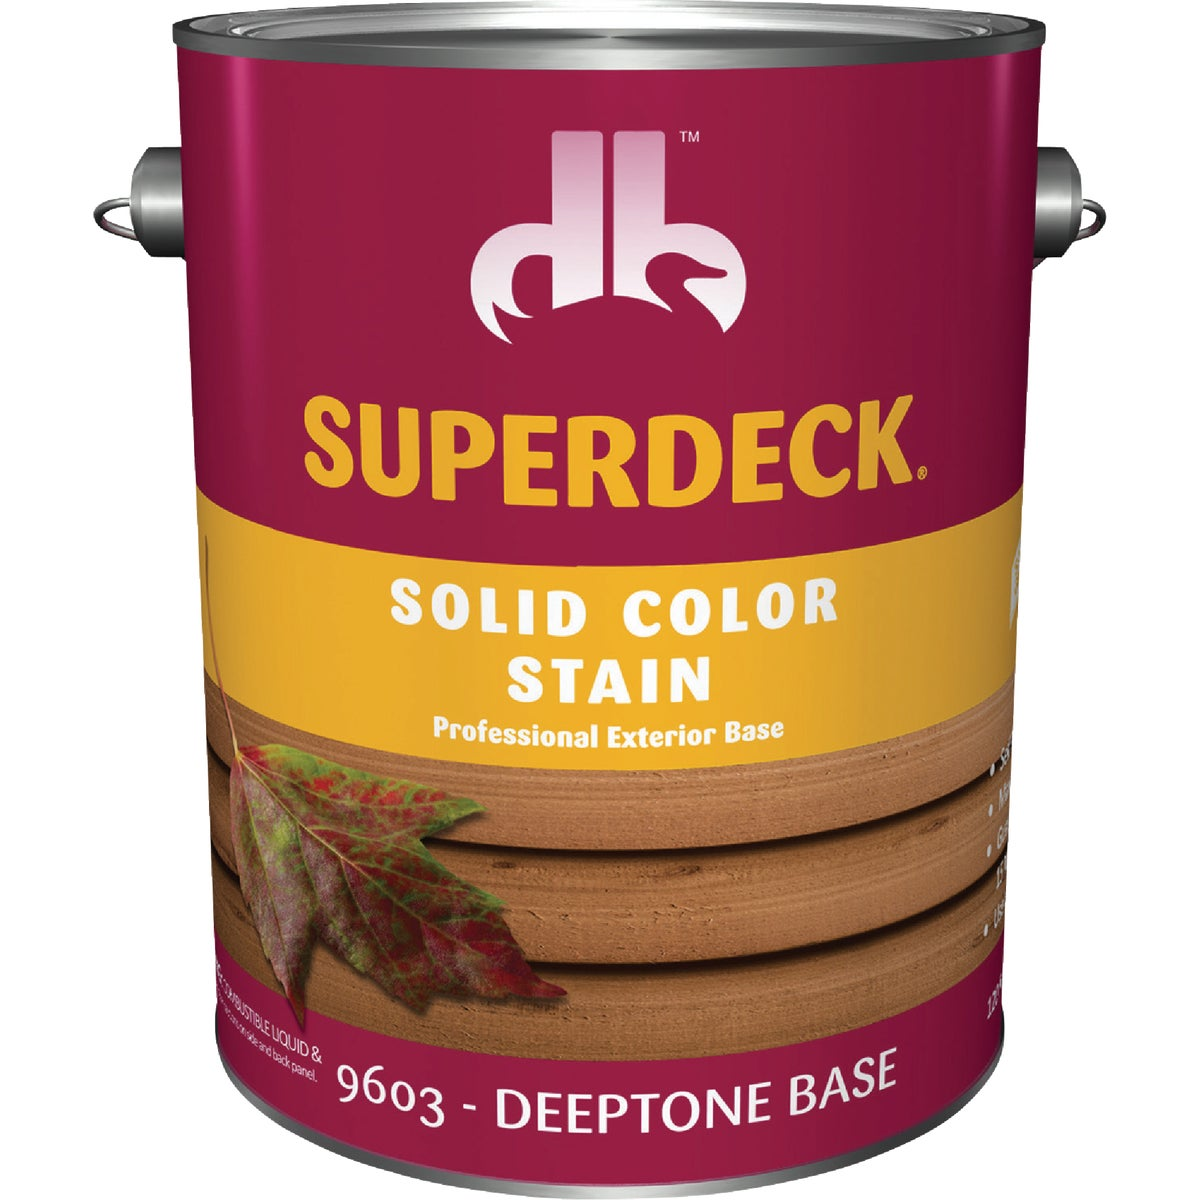 DEEPTN SOLID DECK STAIN